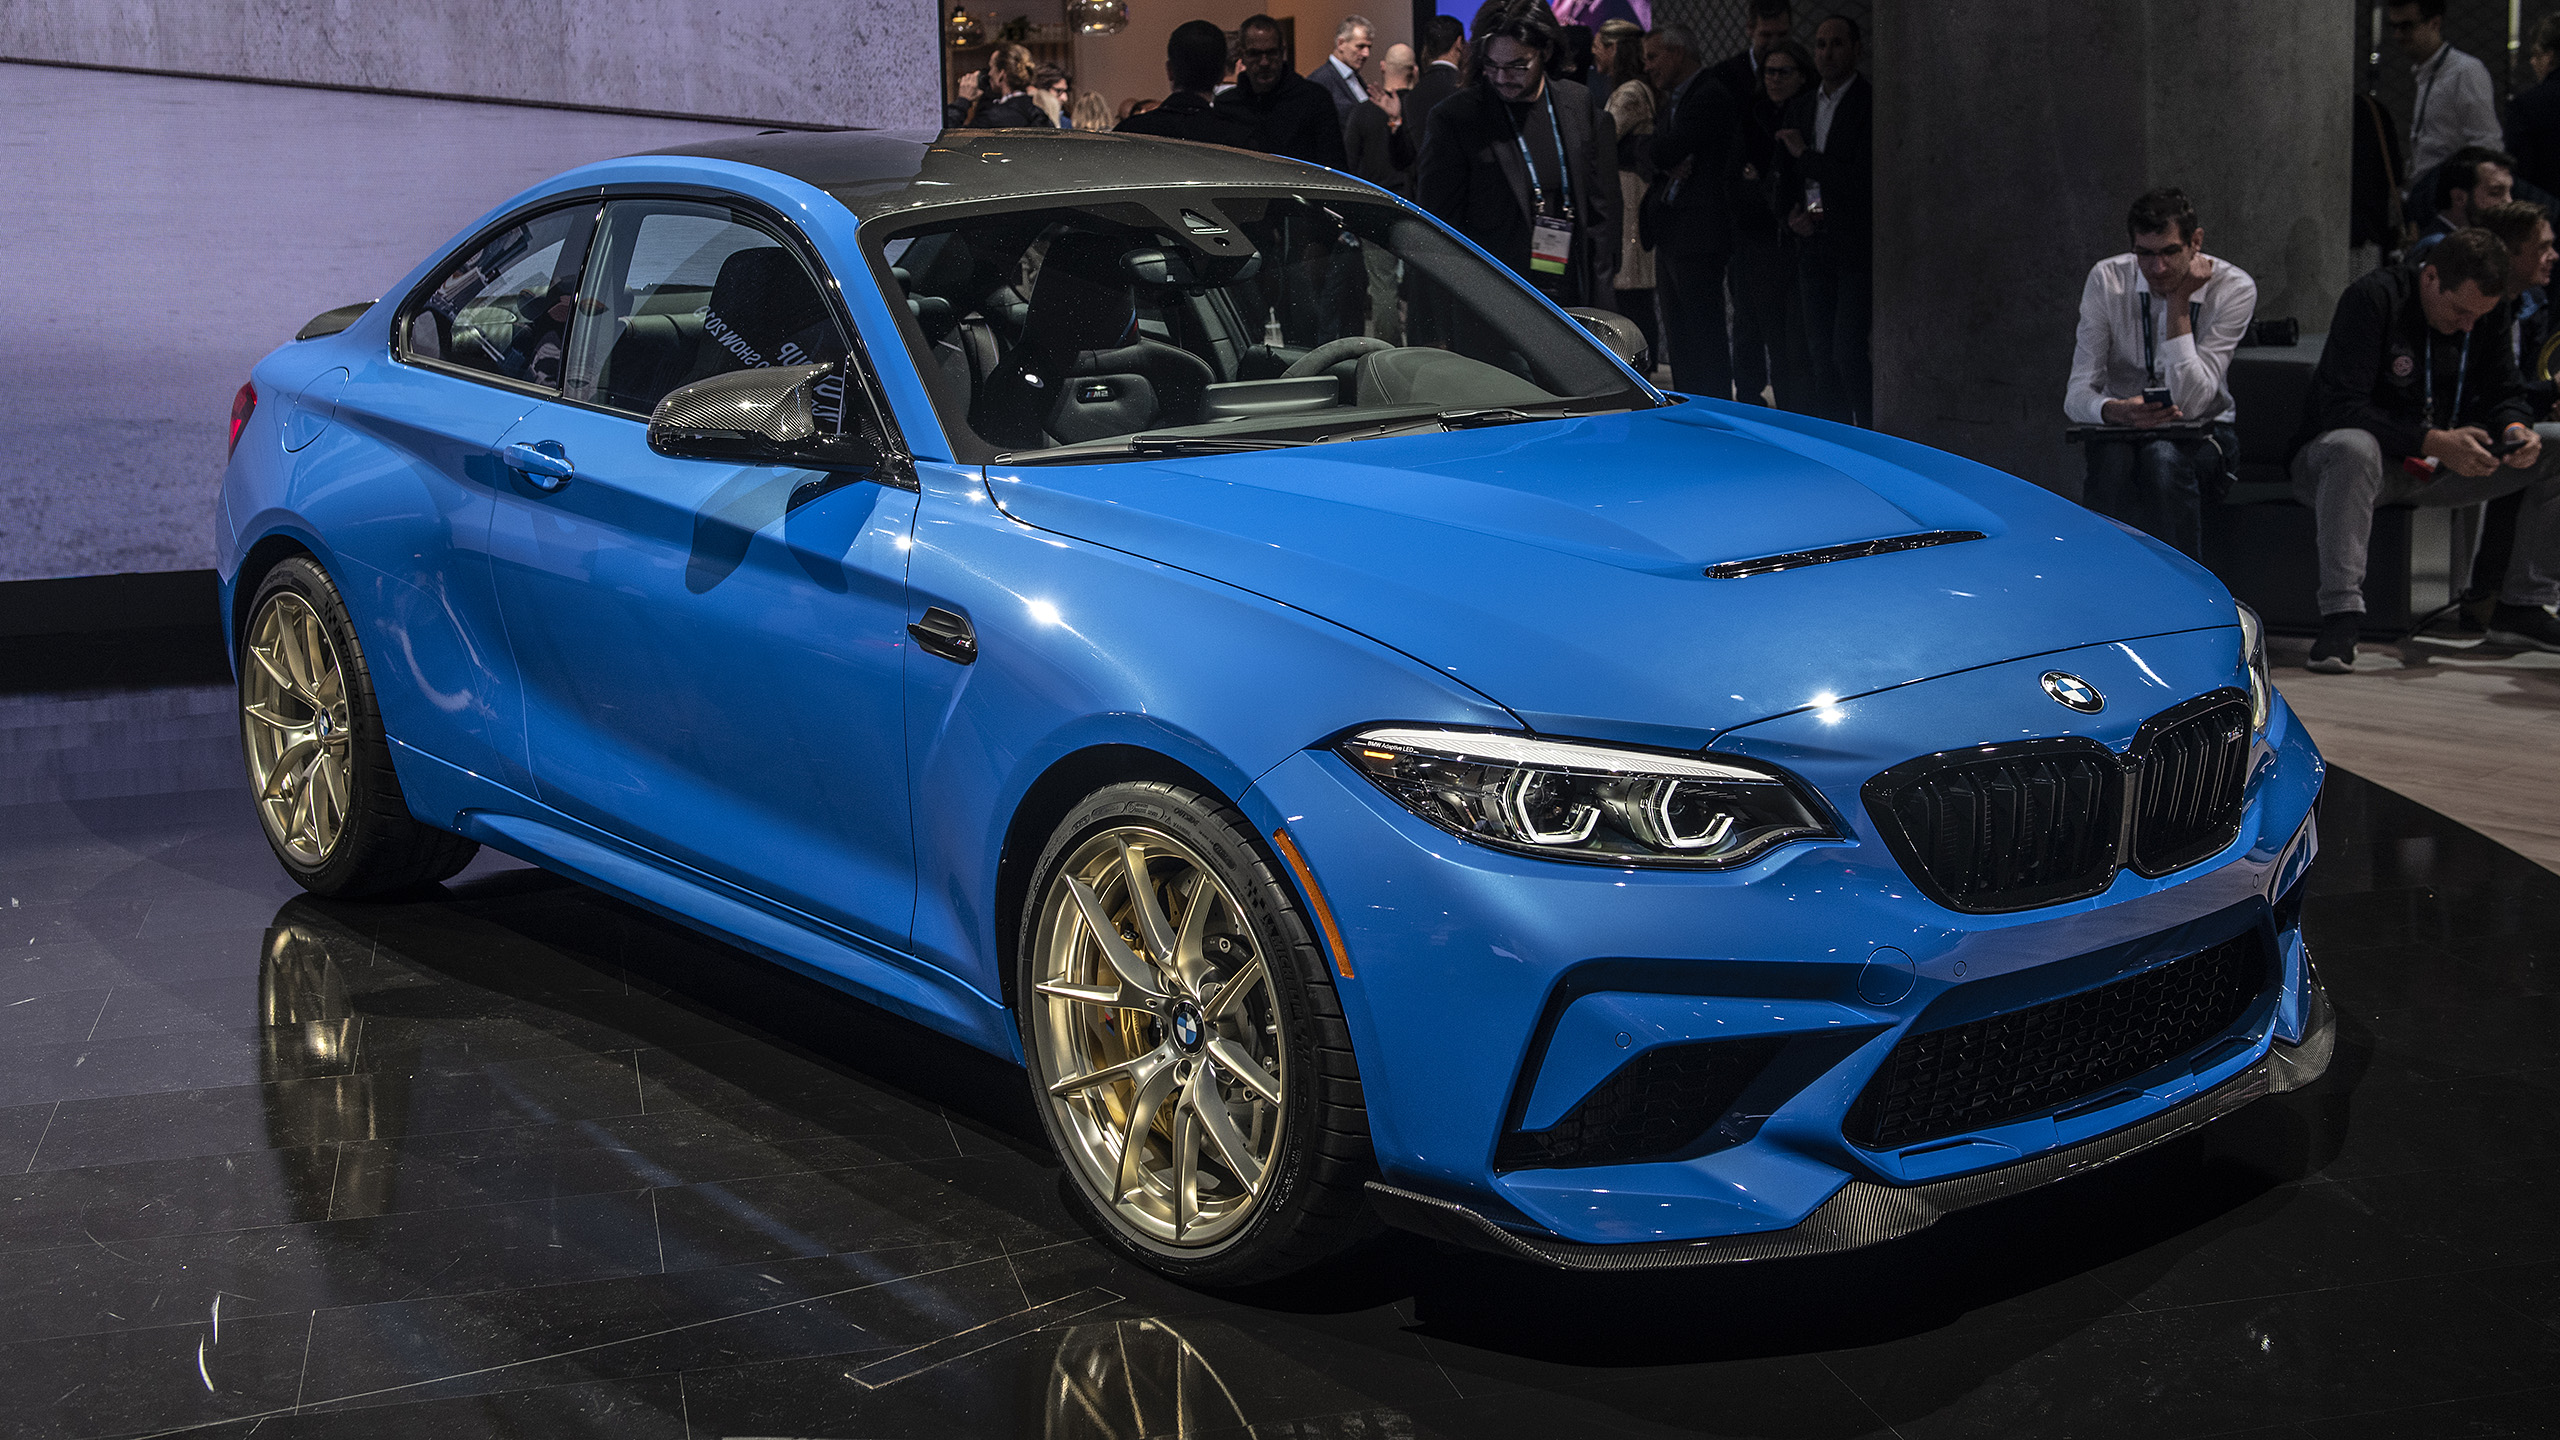 Certified Pre Owned Bmw >> BMW breaks cover on the limited-edition 2020 M2 CS | Autoblog